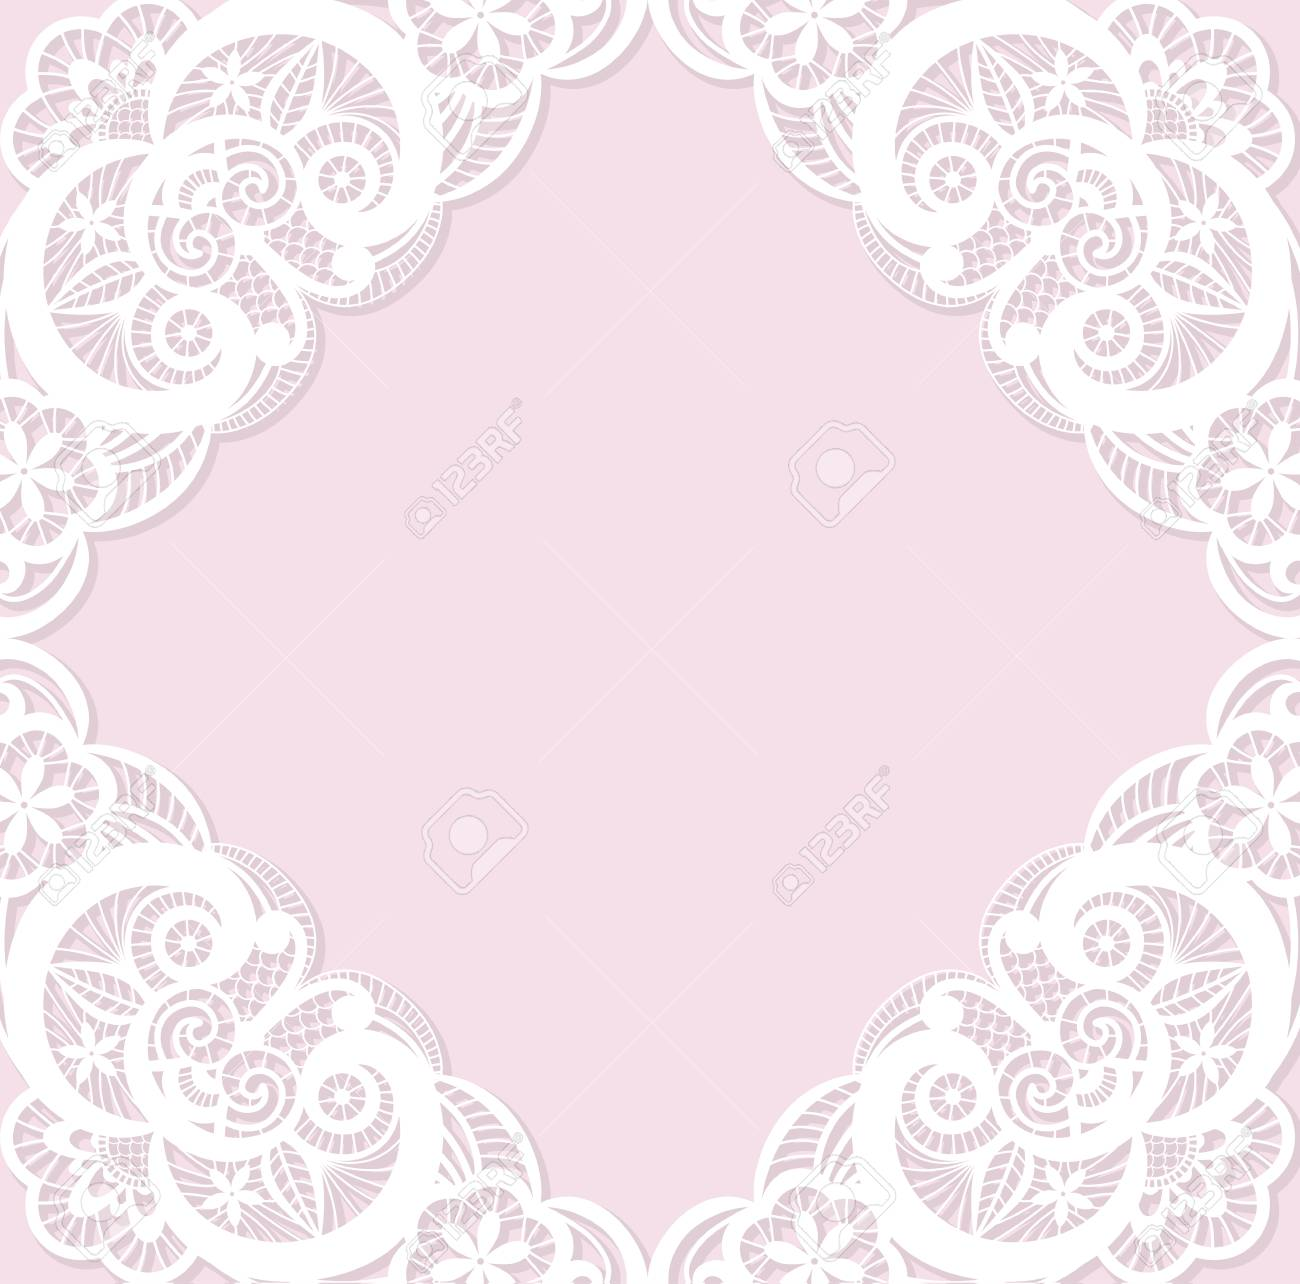 Classical wedding invitation template with white lace royalty free classical wedding invitation template with white lace stock vector 44166150 stopboris Choice Image